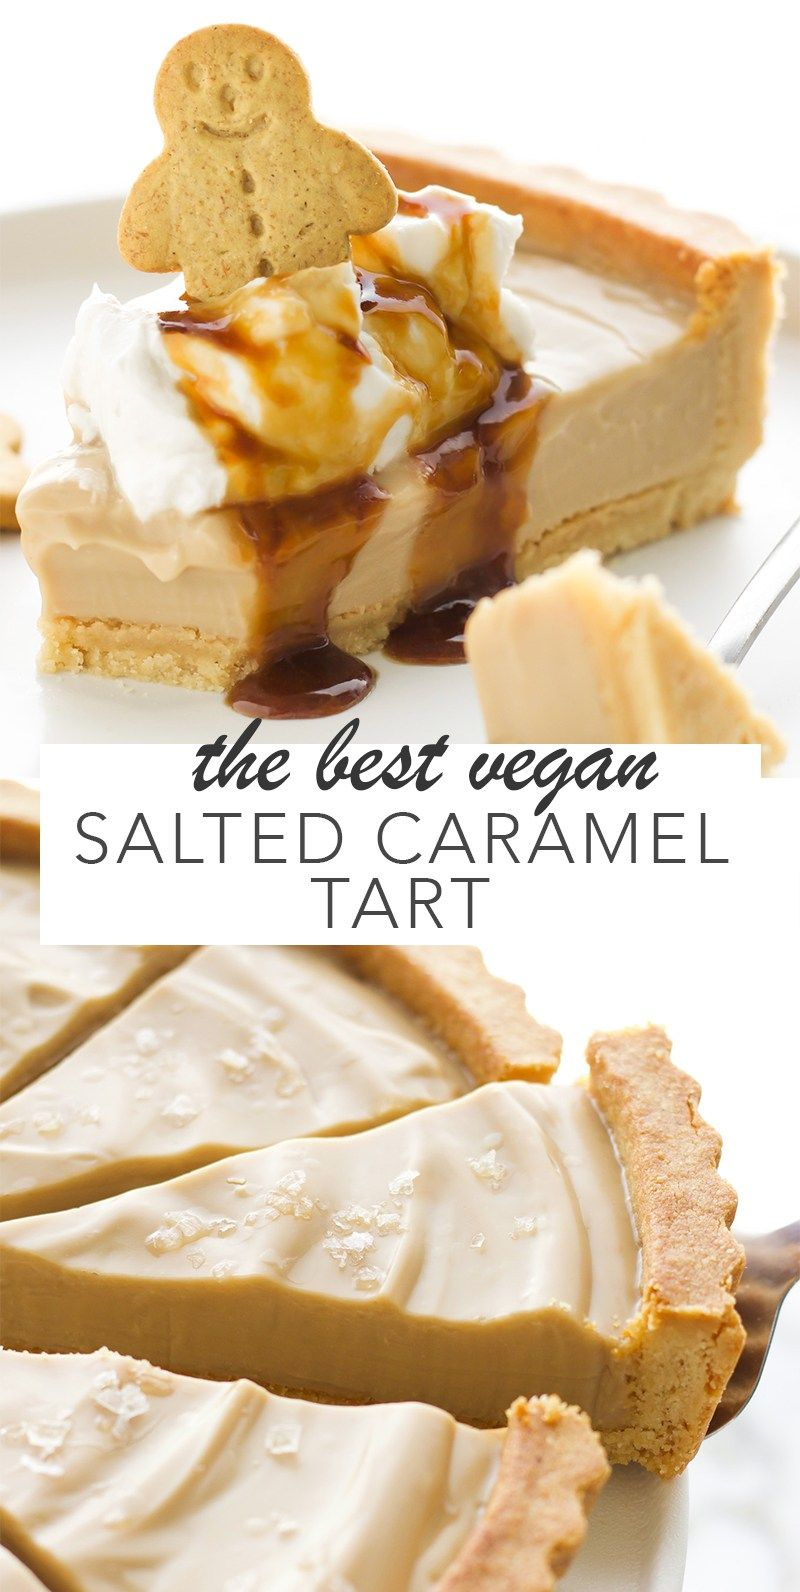 The Best Vegan Salted Caramel Tart